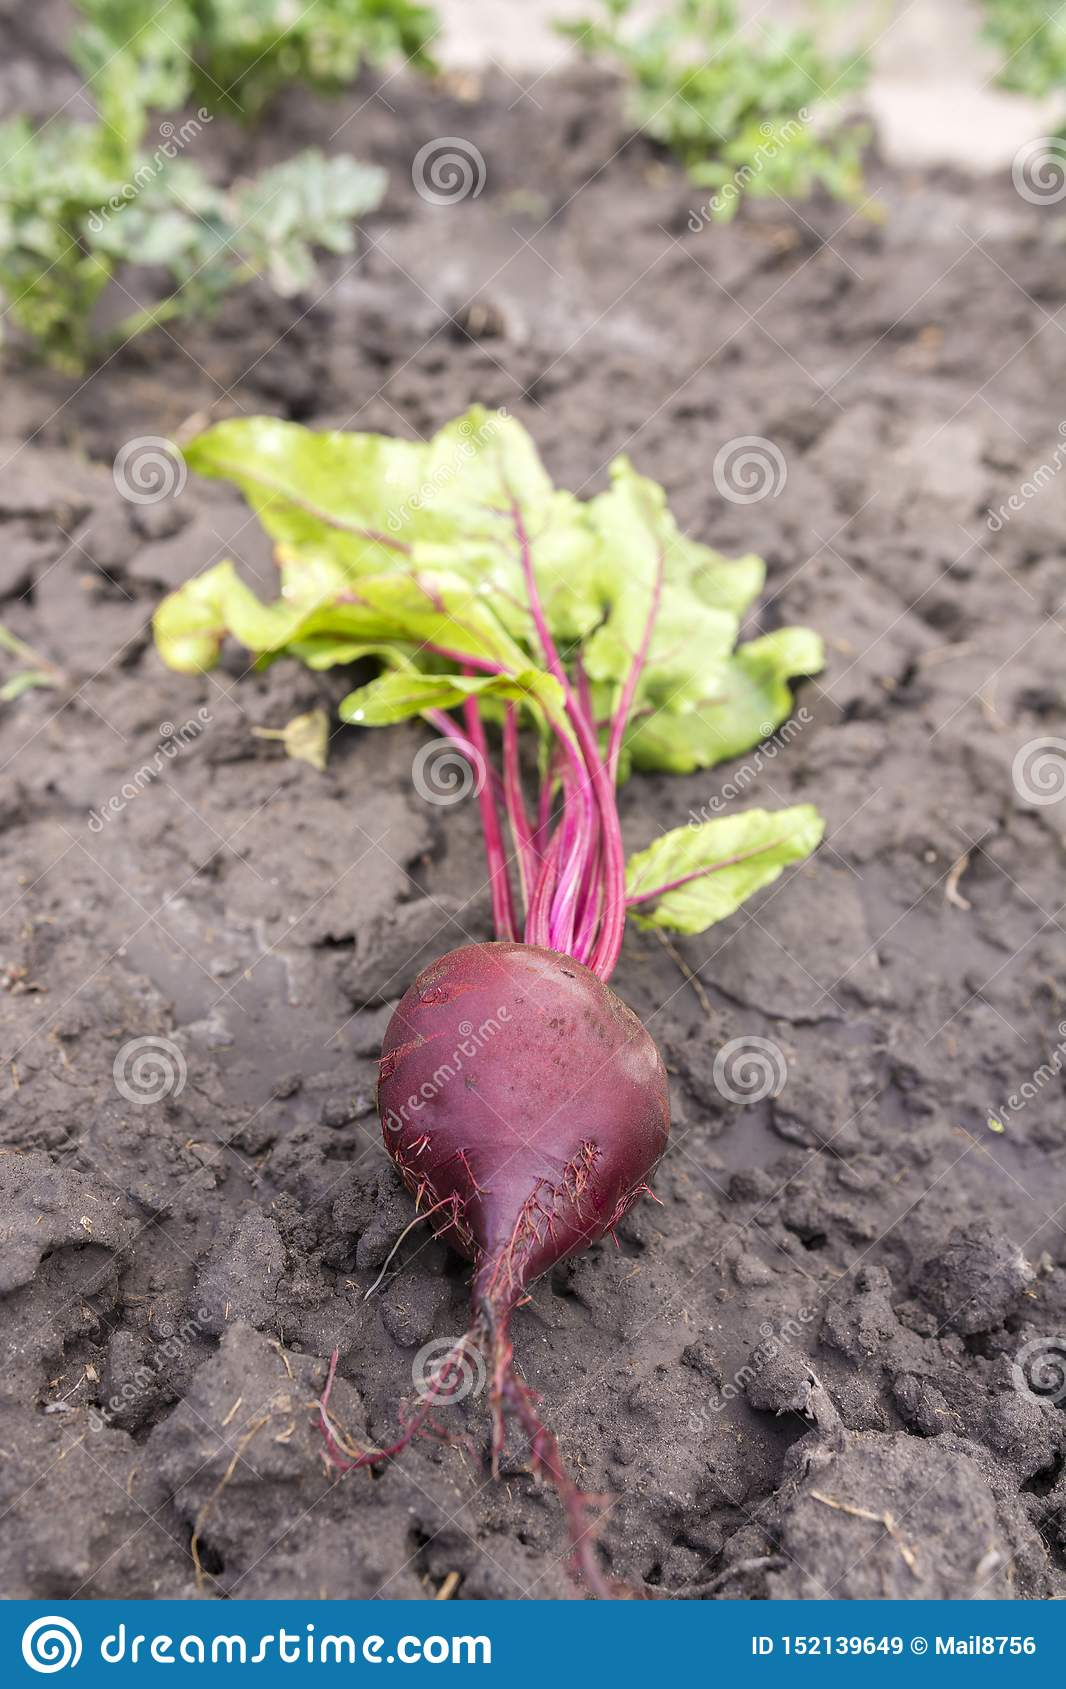 Freshly dug from the beds of beets on the ground